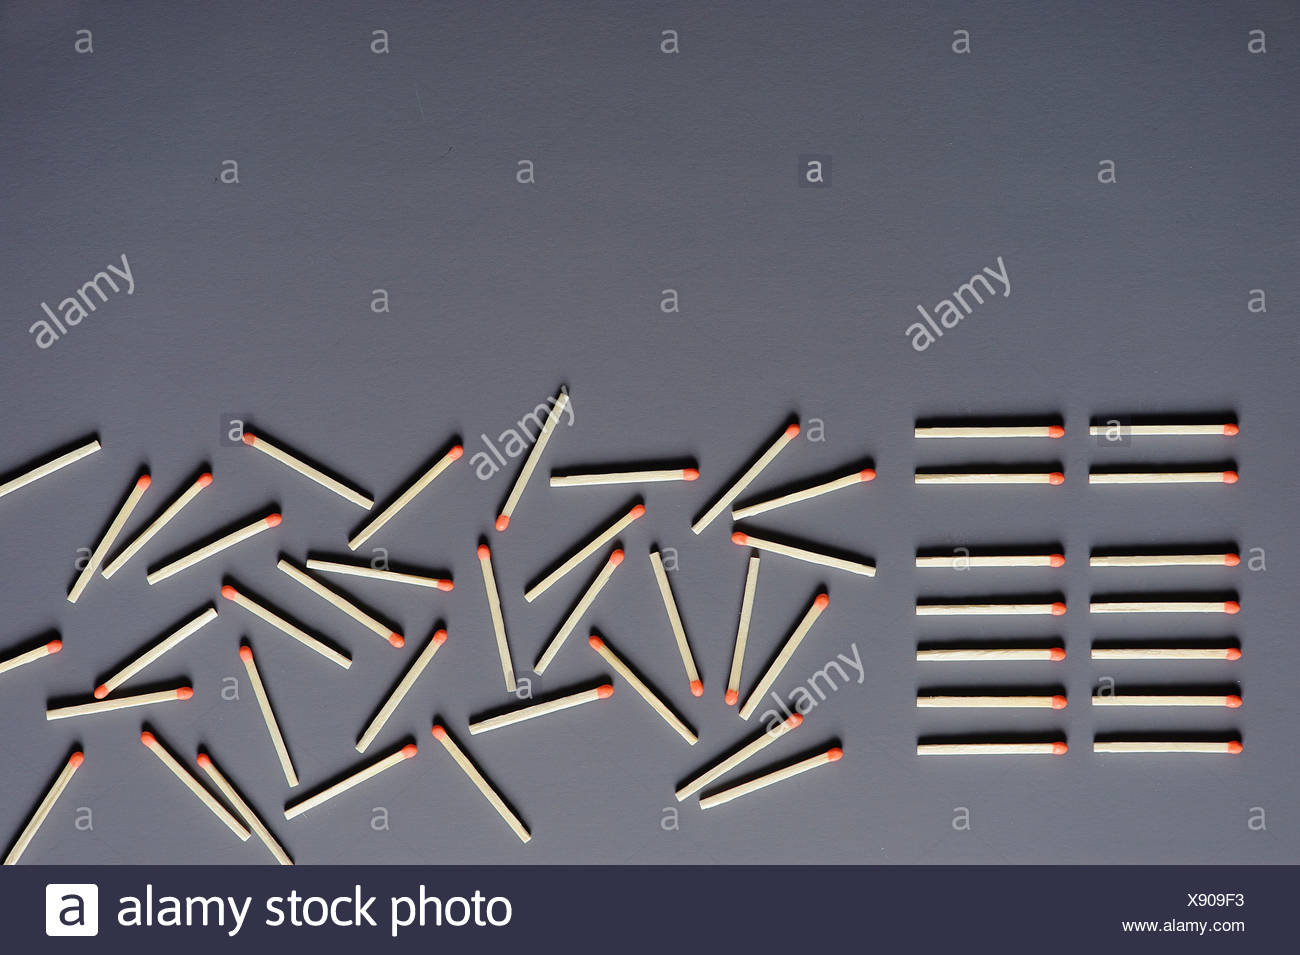 Matches lined up and scattered on a surface - Stock Image